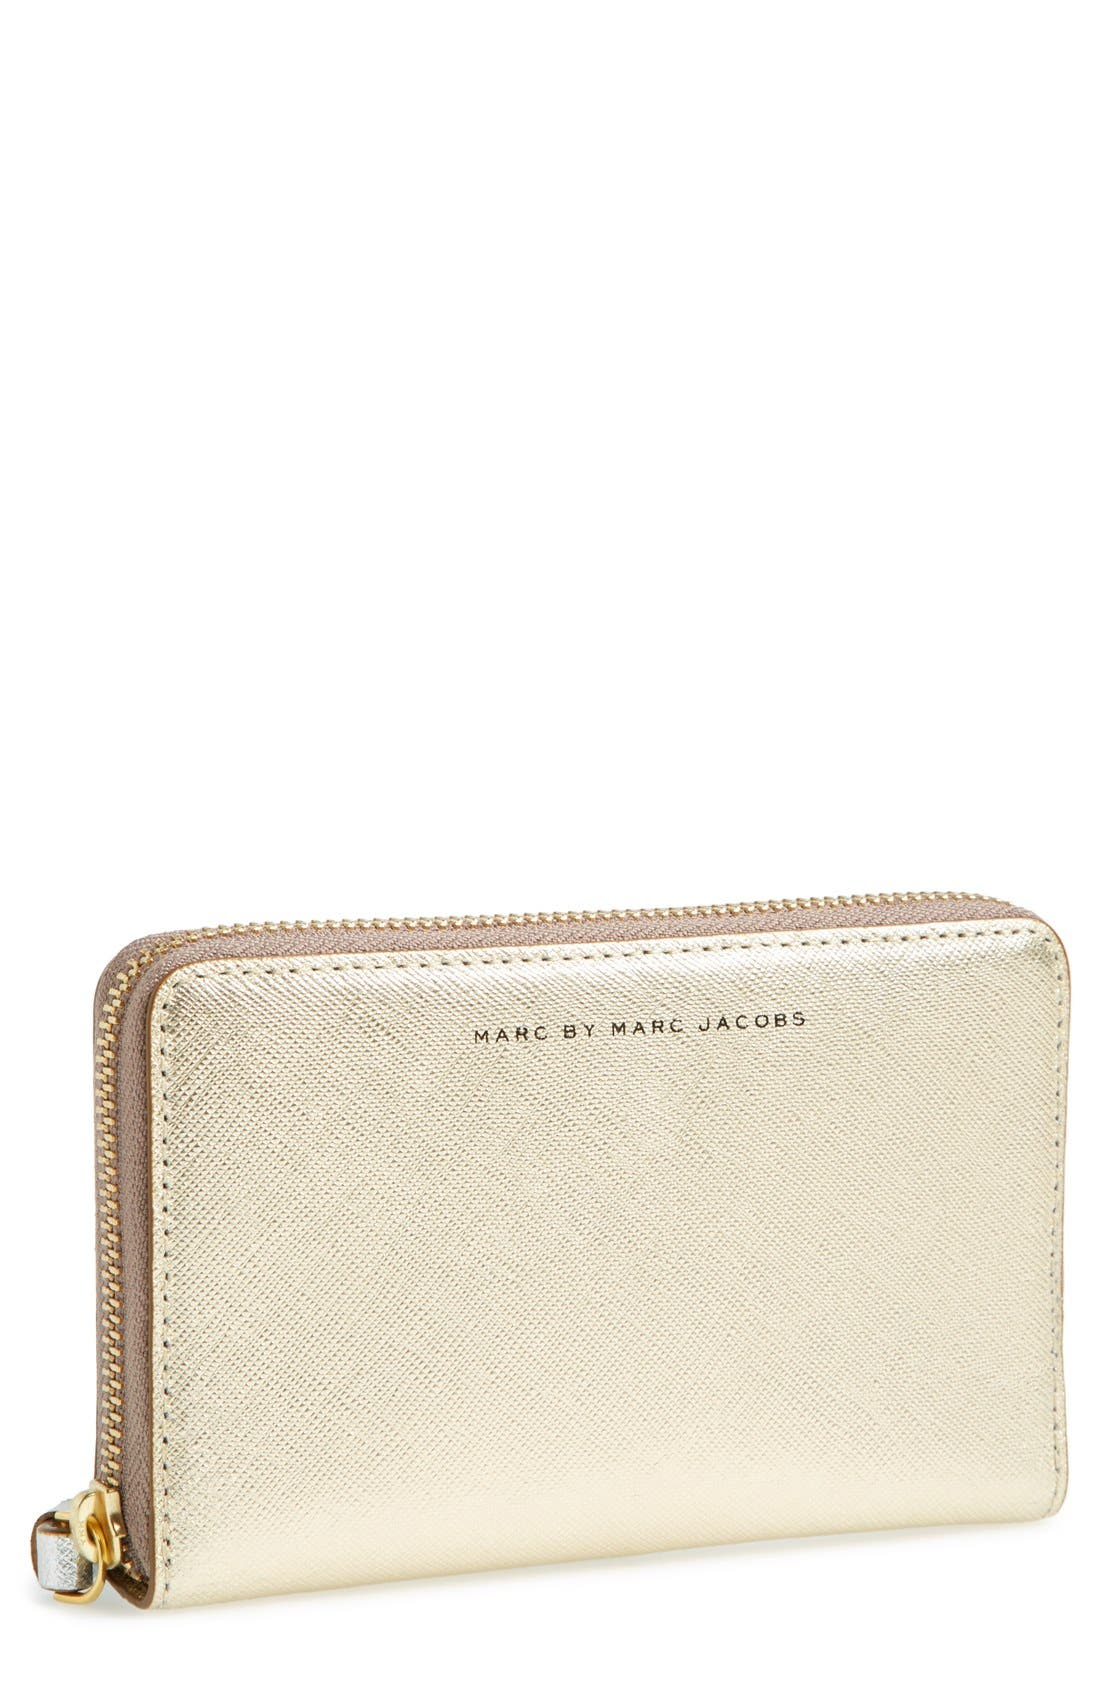 Alternate Image 1 Selected - MARC BY MARC JACOBS 'Sophisticato Mildred' Leather Phone Wallet